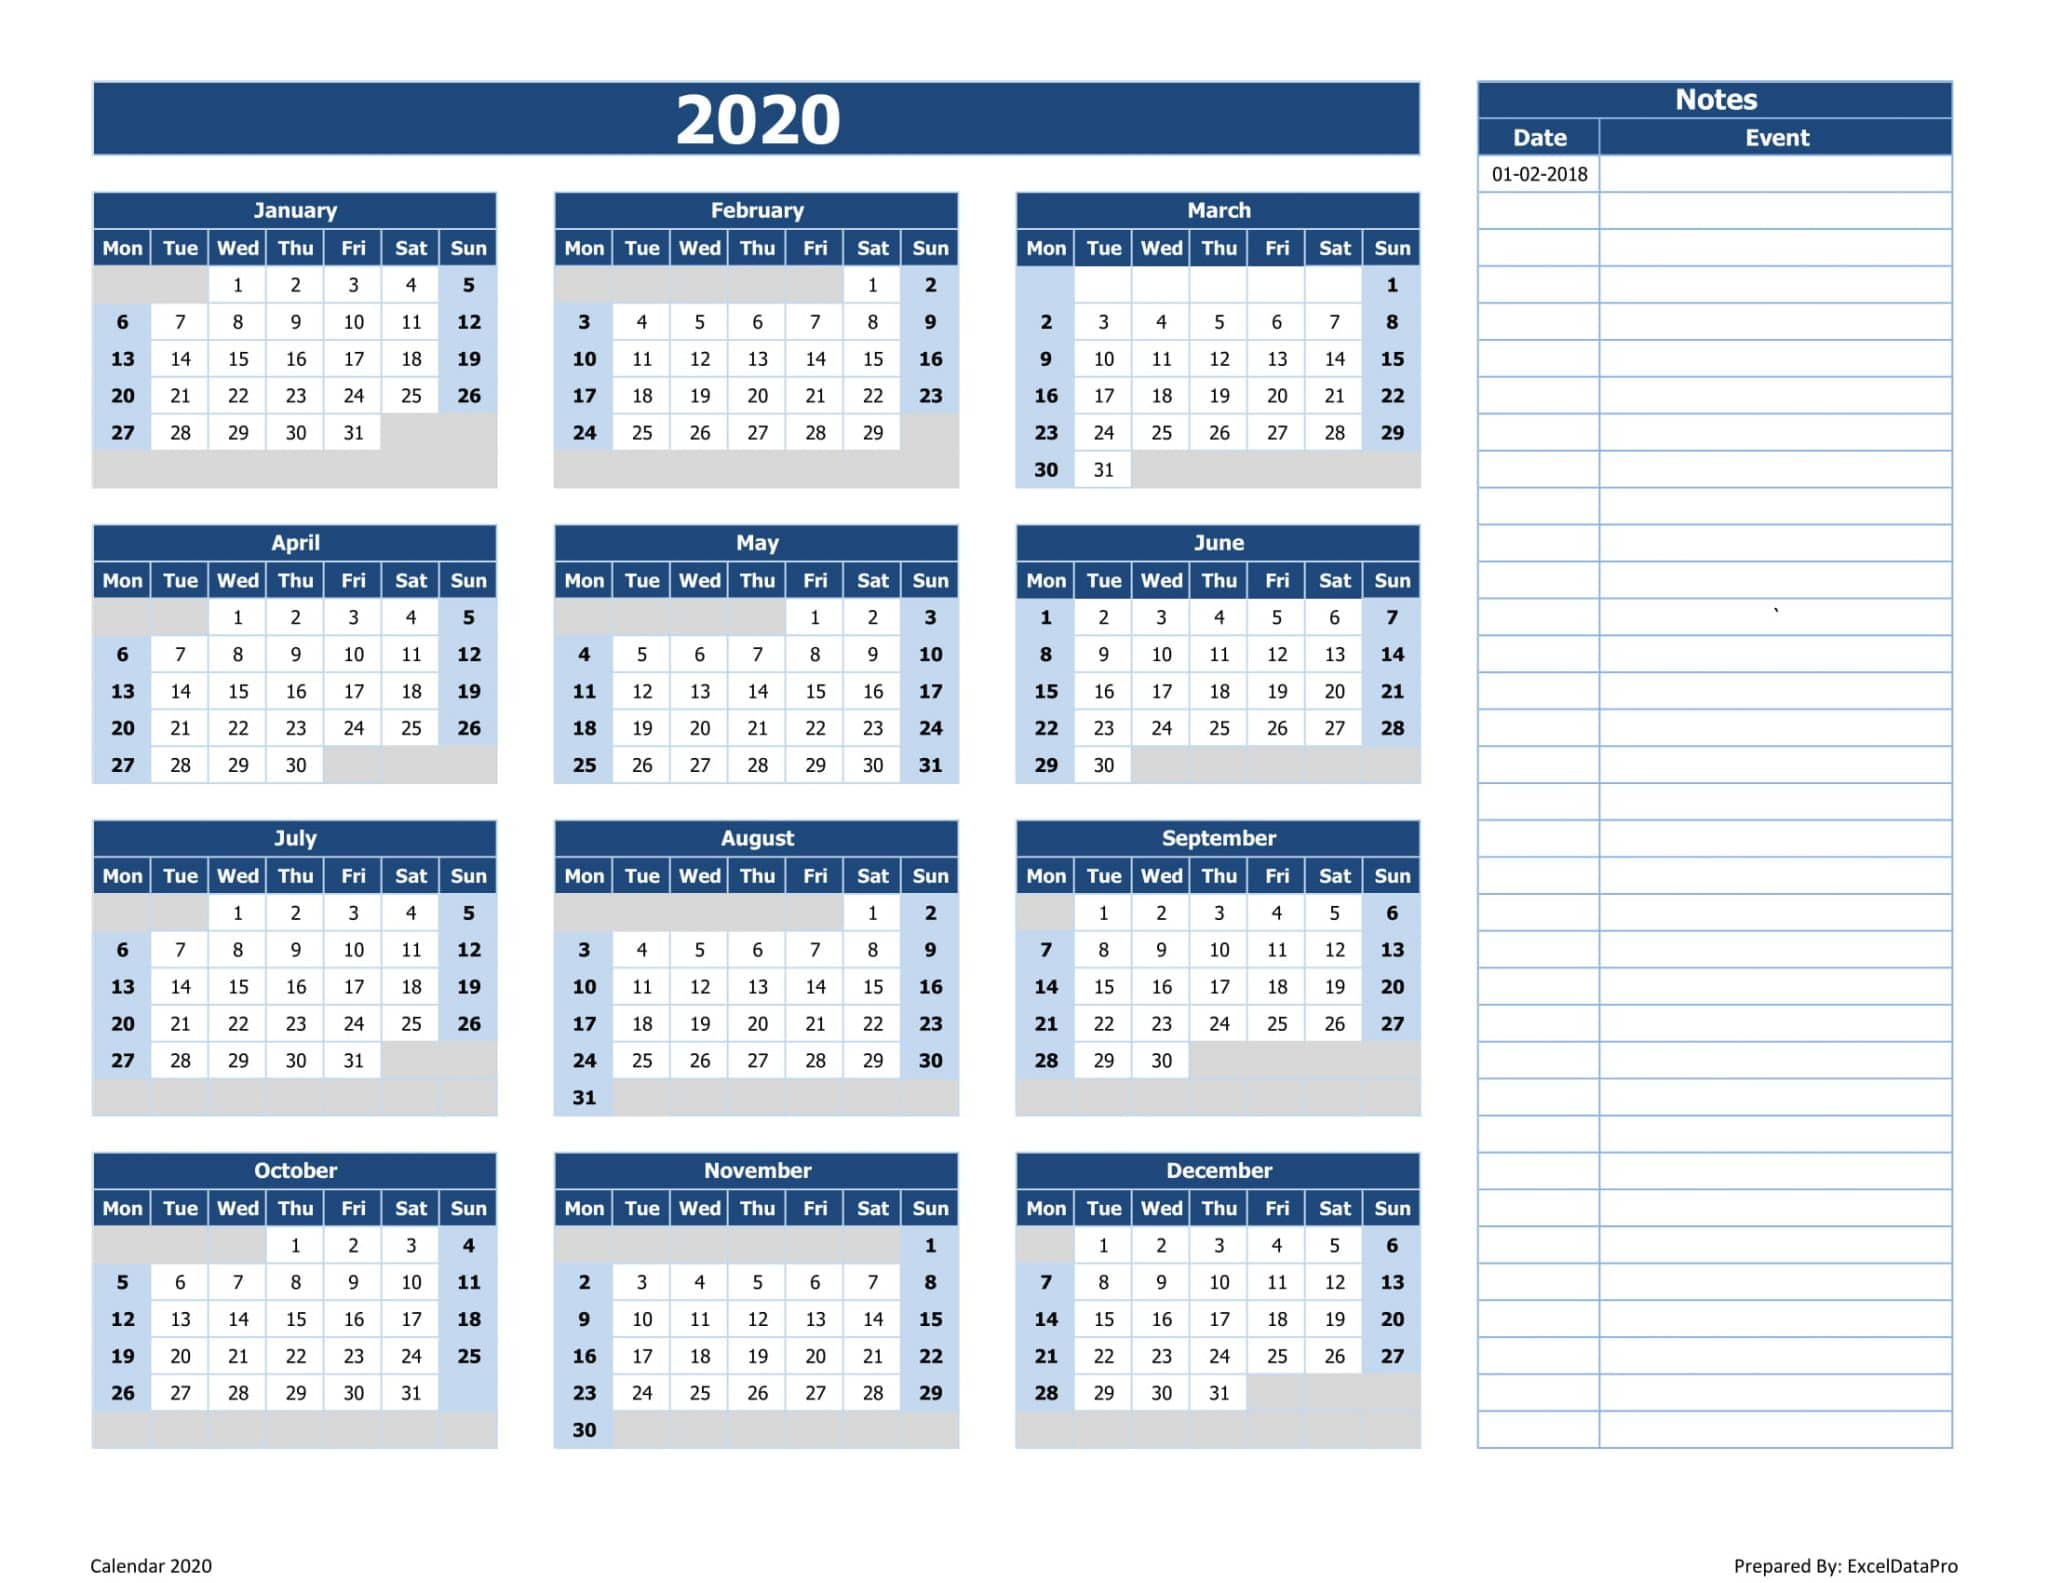 2020 Yearly Calendar (Mon Start) With Notes